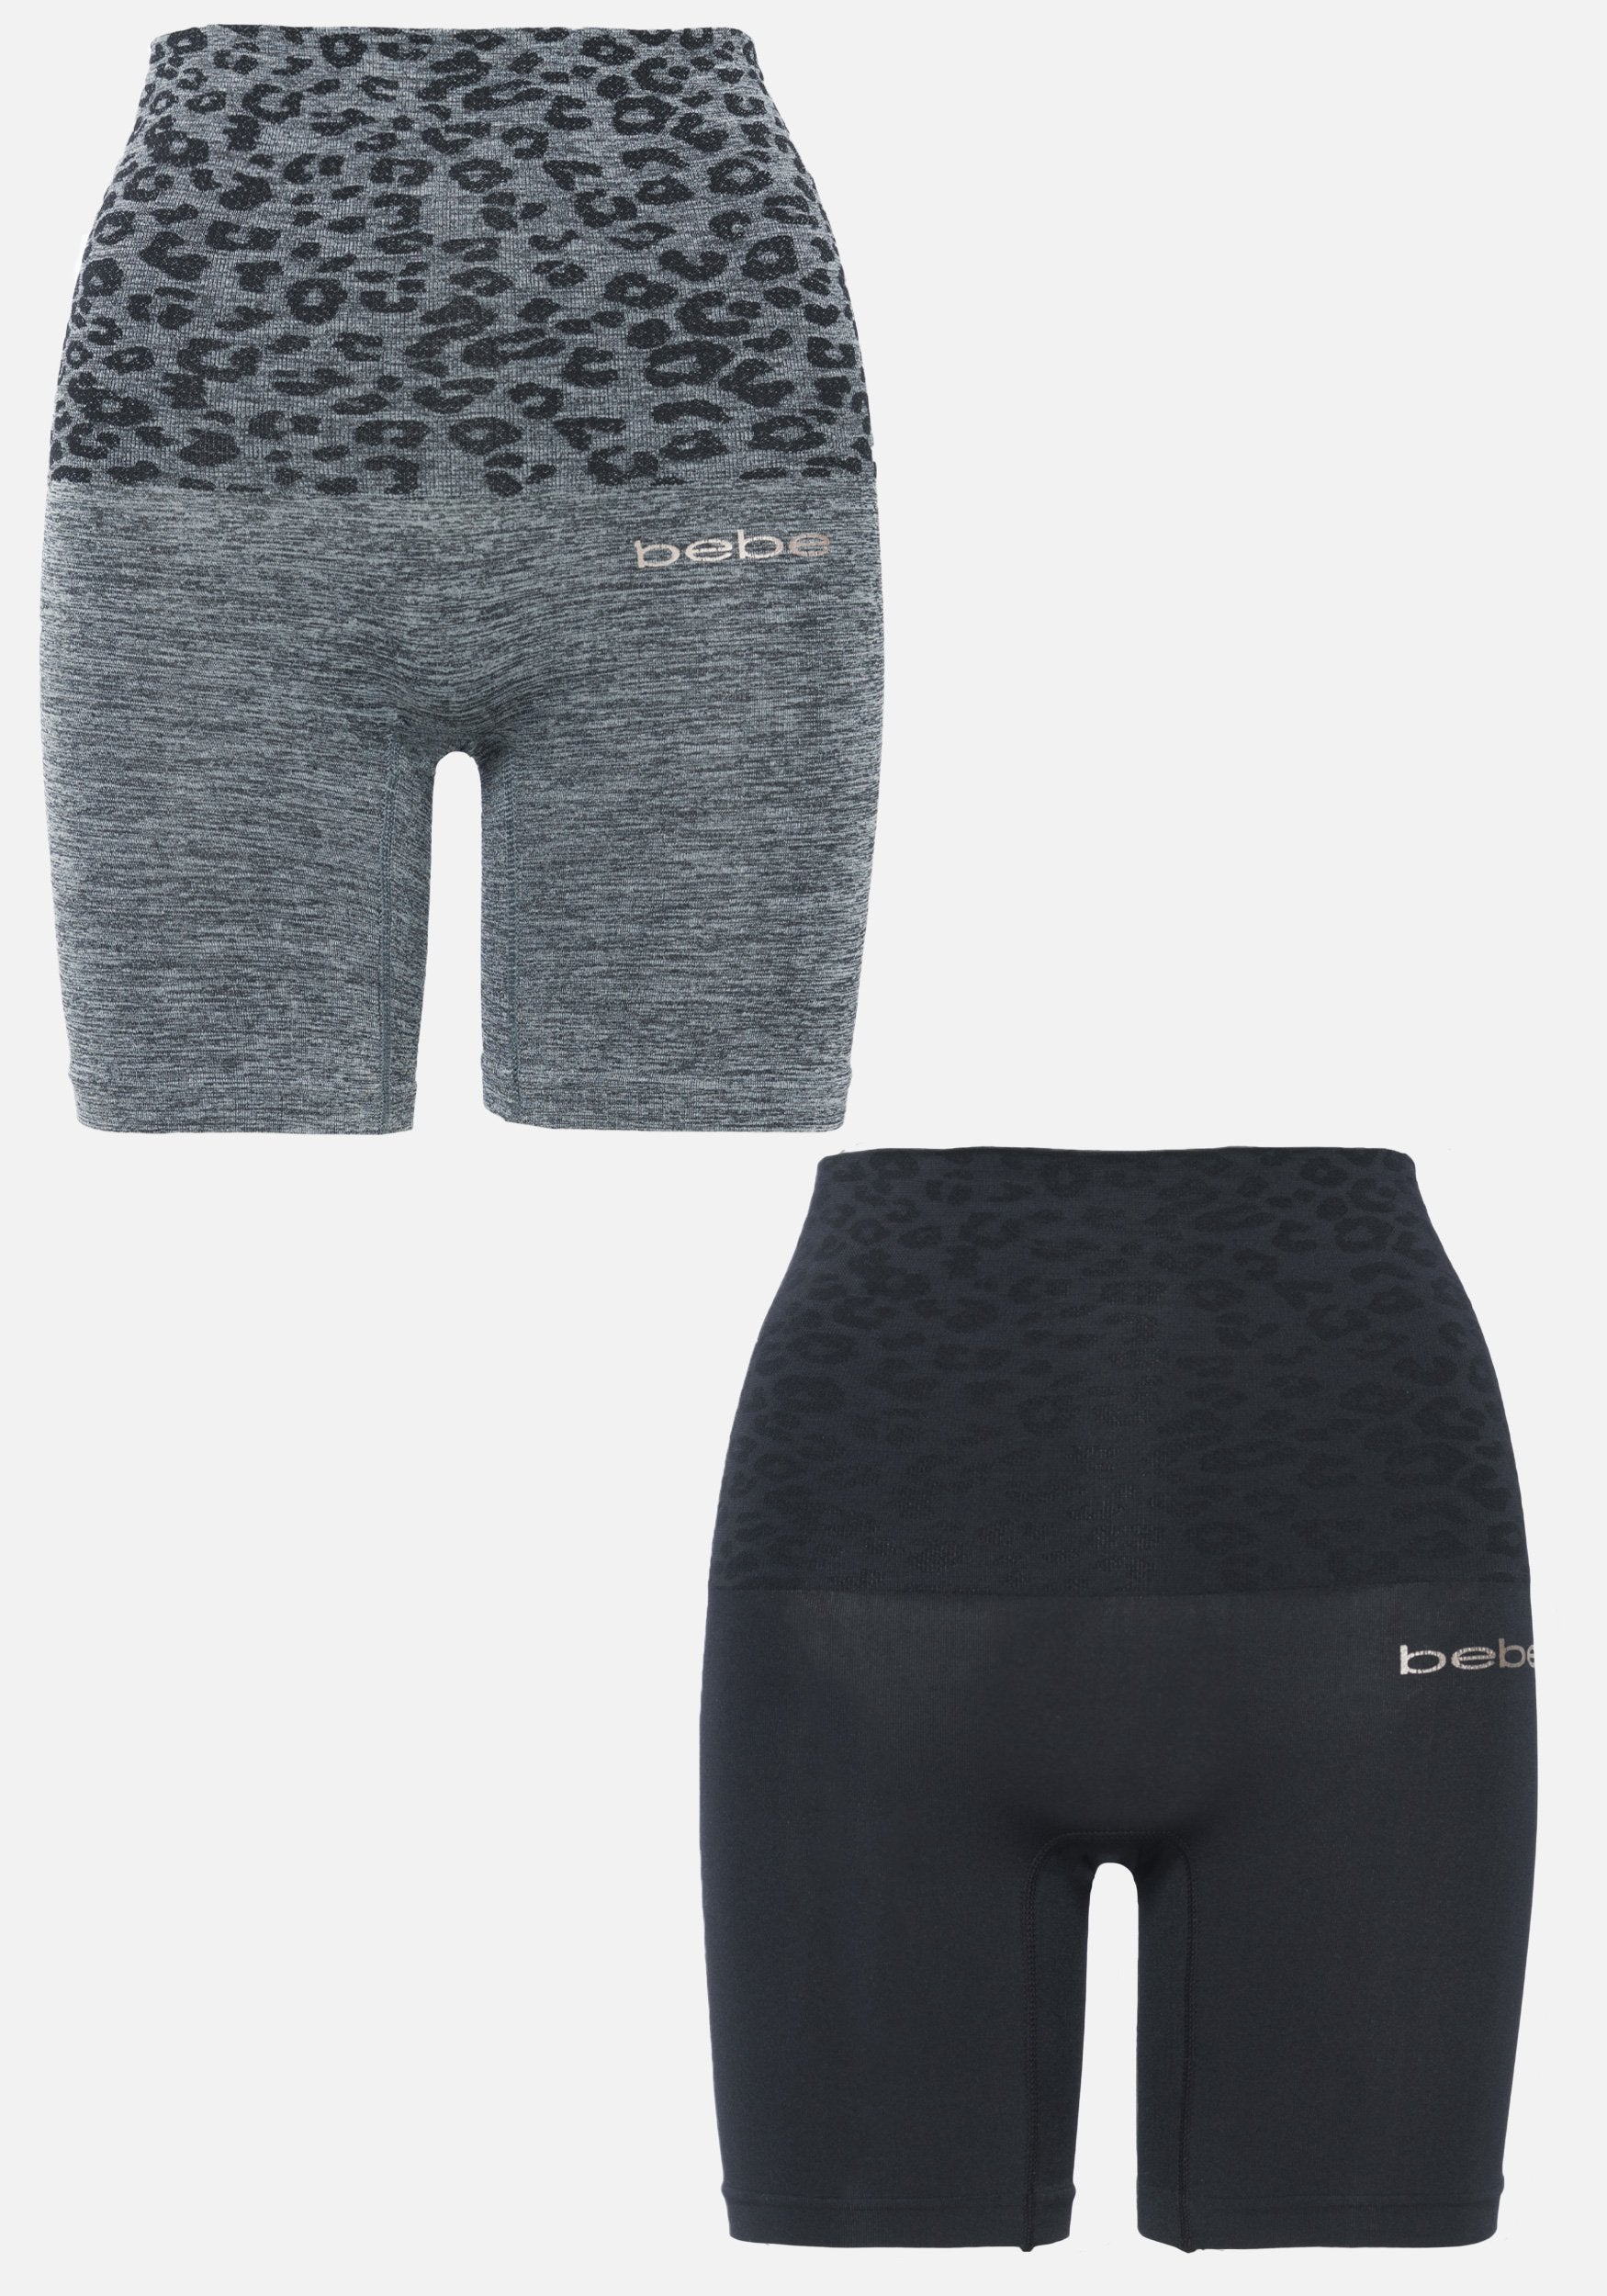 Bebe coupon: Bebe Women's 2 Pack Seamless Thigh Shaper Set, Size Small in Charcoal Heather Spandex/Nylon